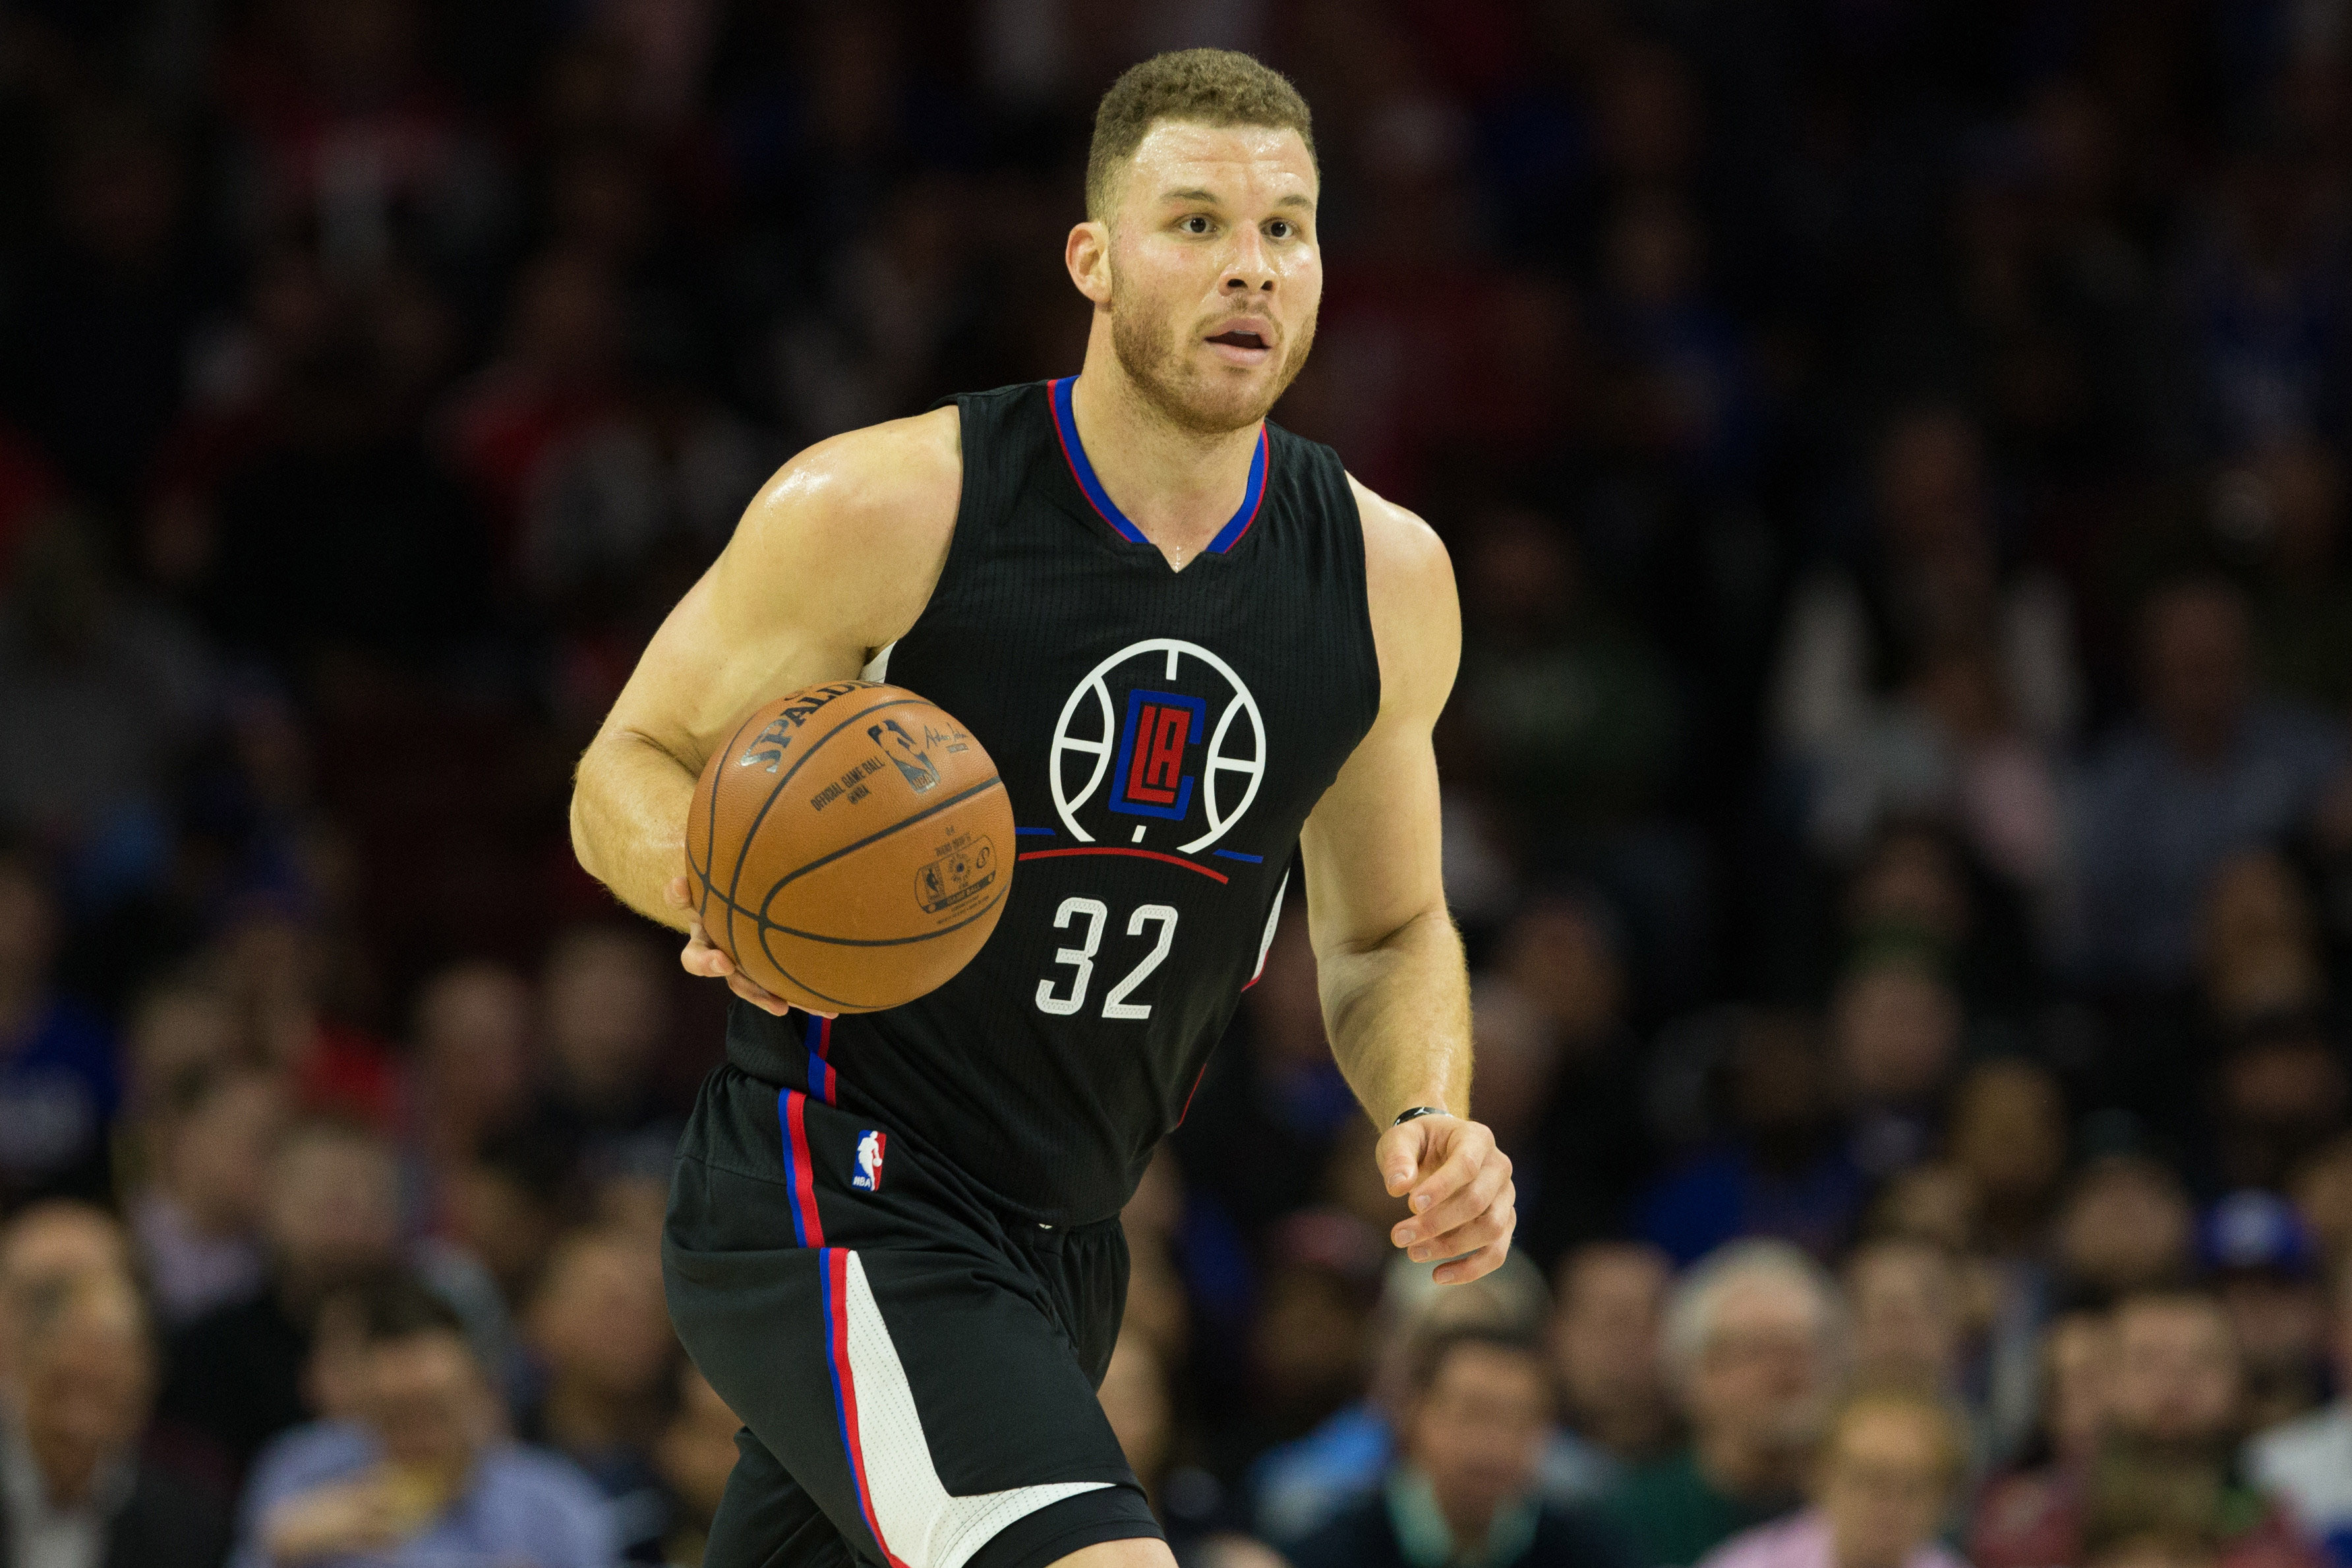 La clippers the impact of blake griffins surgery on the team foxsports com - La clippers the impact of blake griffins surgery on the team foxsports com 12